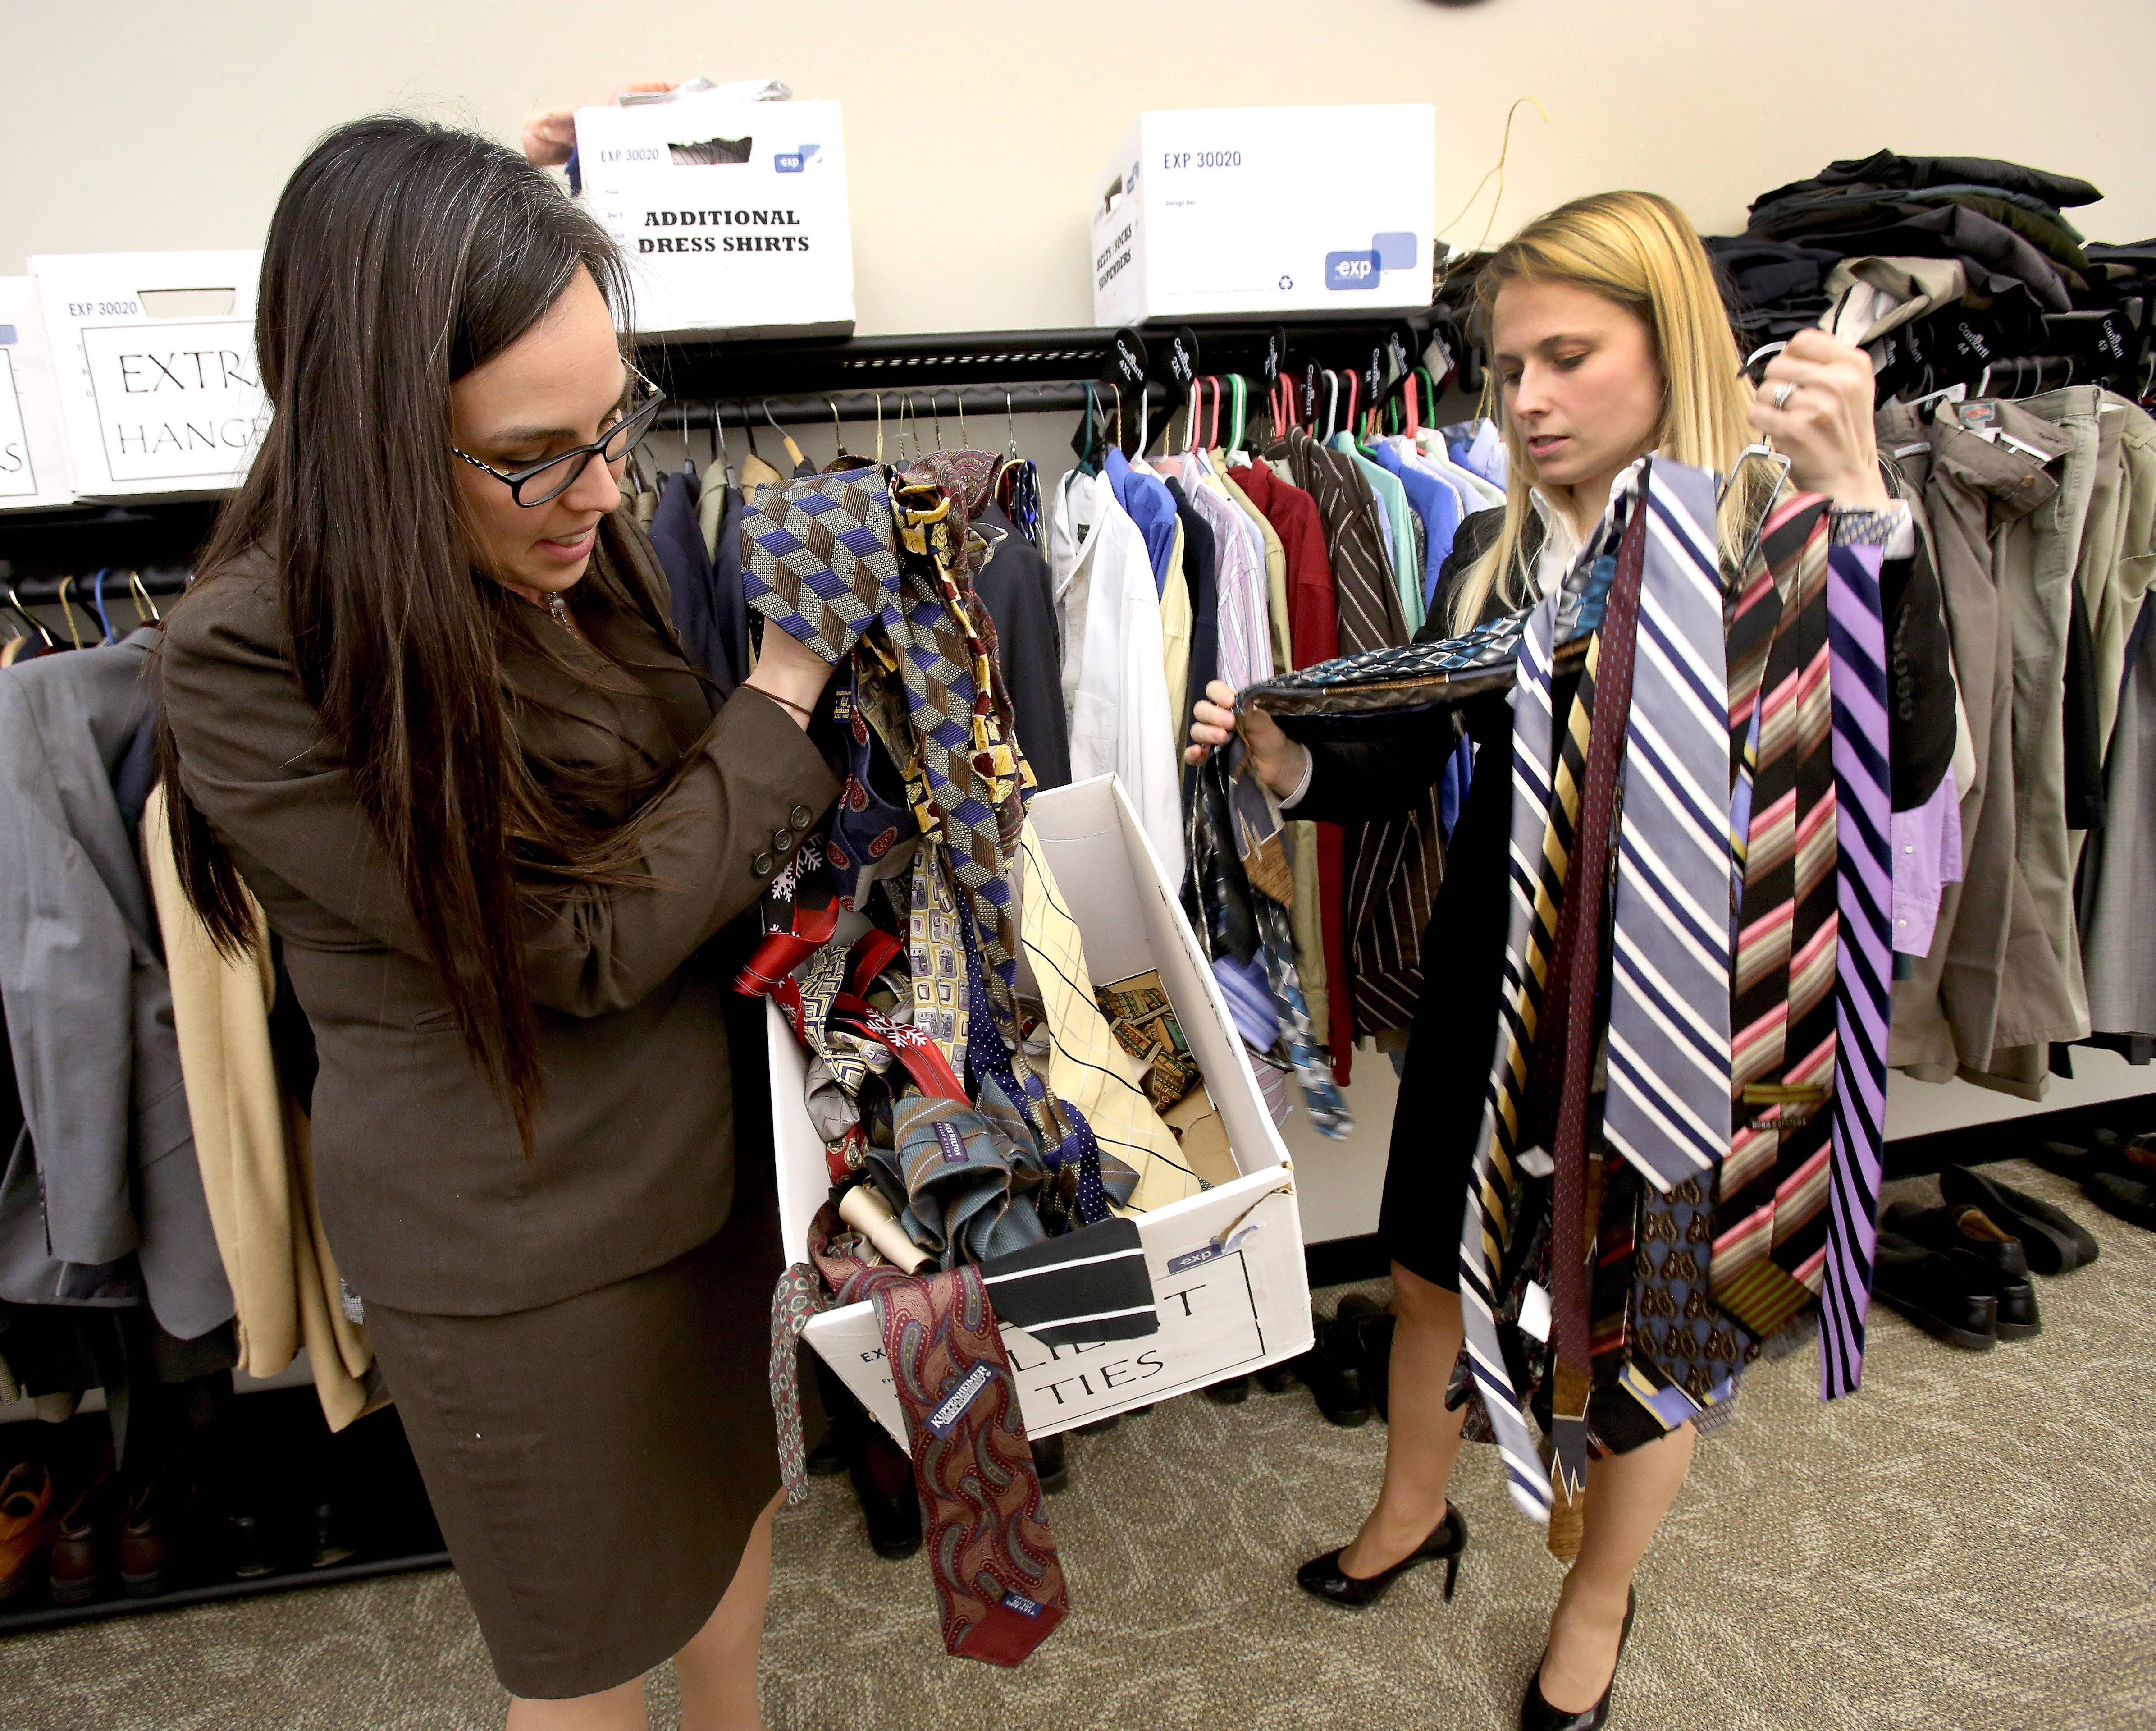 Jennifer Maples, left, and Kristen Nevdal, senior assistant DuPage County public defenders, show off the many ties available, usually for defendants going on trial.